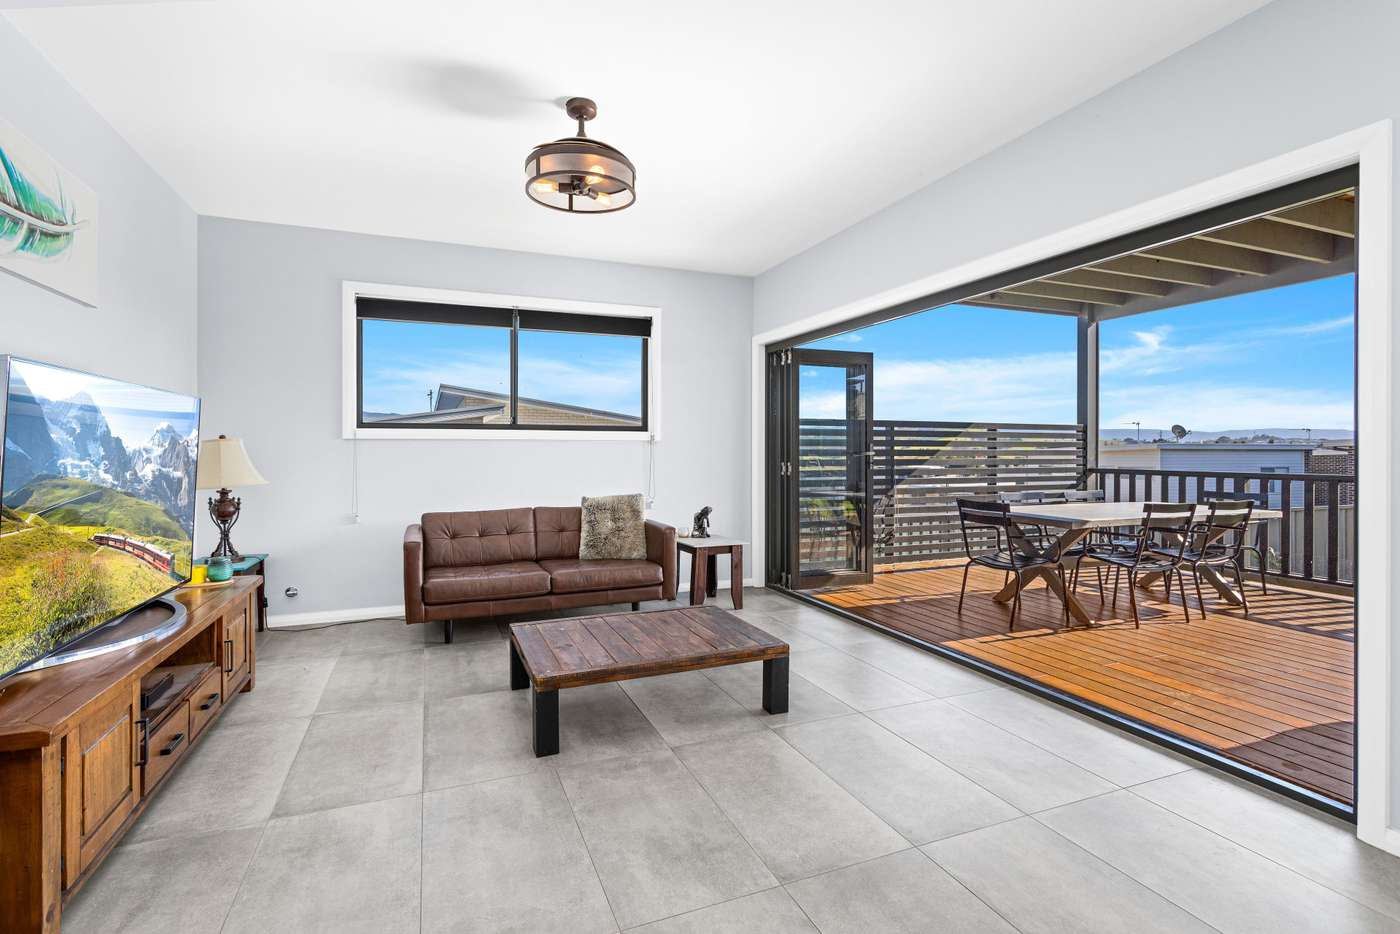 Sixth view of Homely house listing, 20 Bonville Parkway, Shell Cove NSW 2529